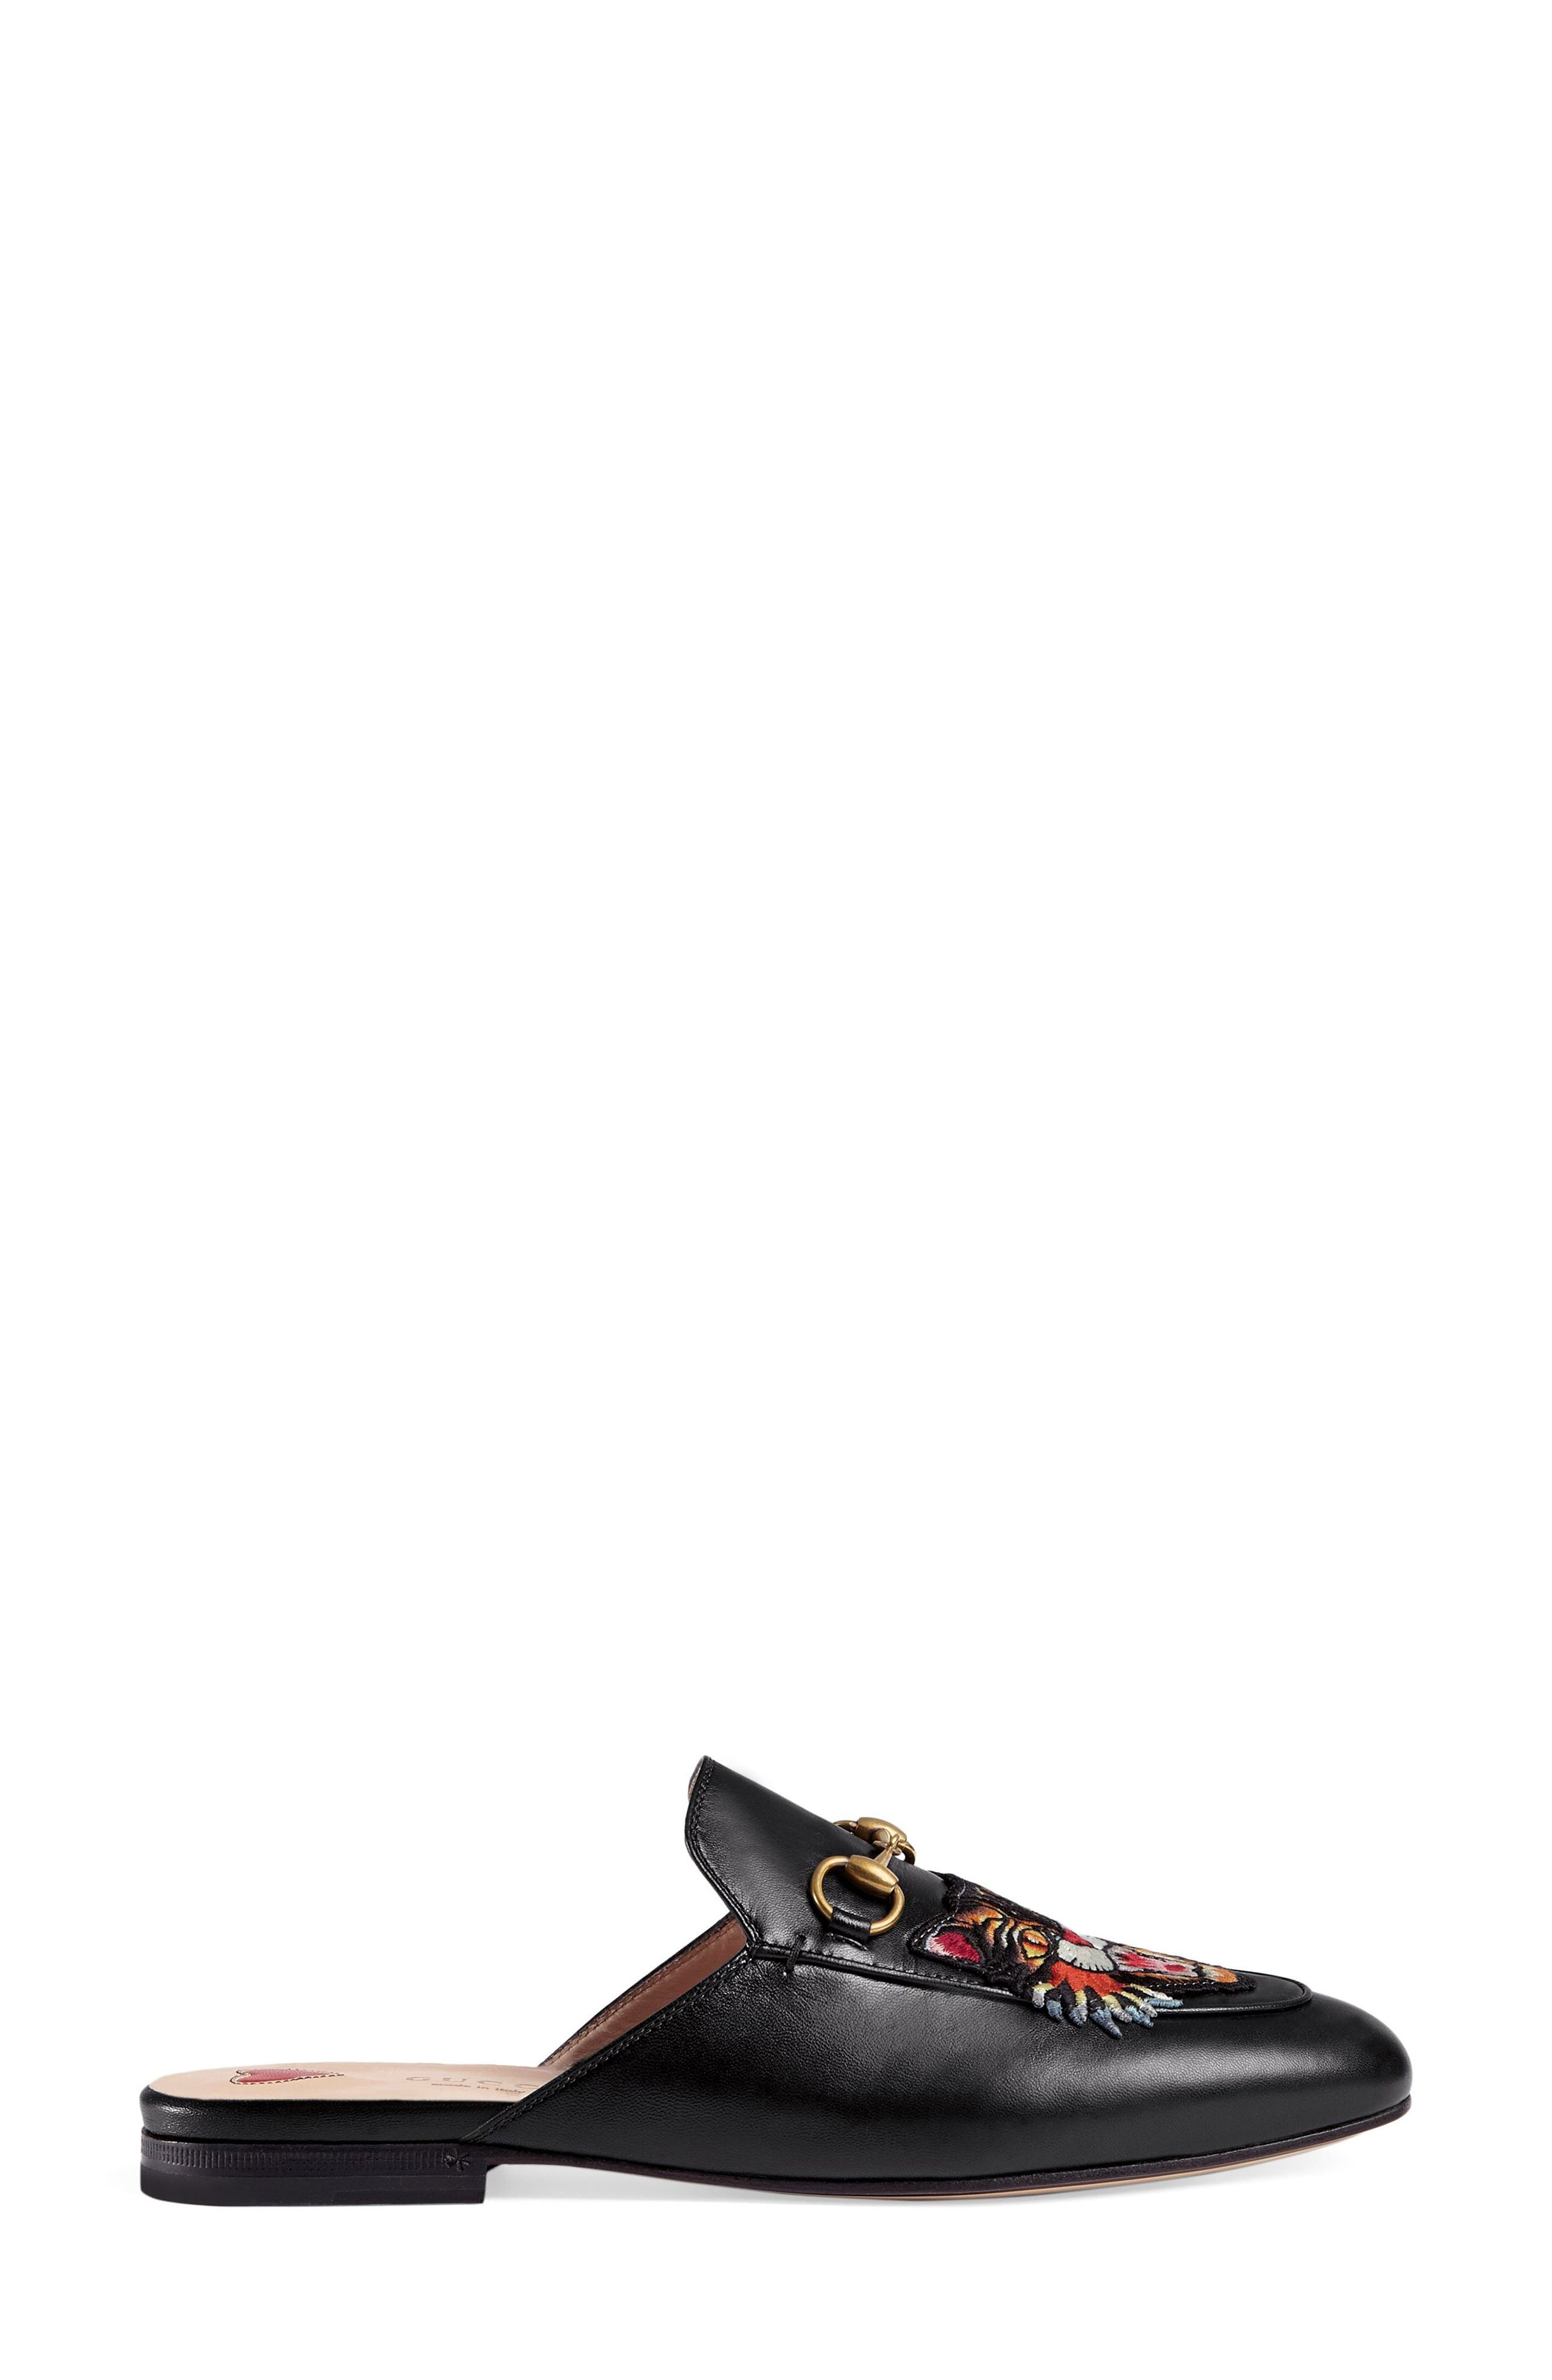 Main Image - Gucci Princetown Angry Cat Mule Loafer (Women)